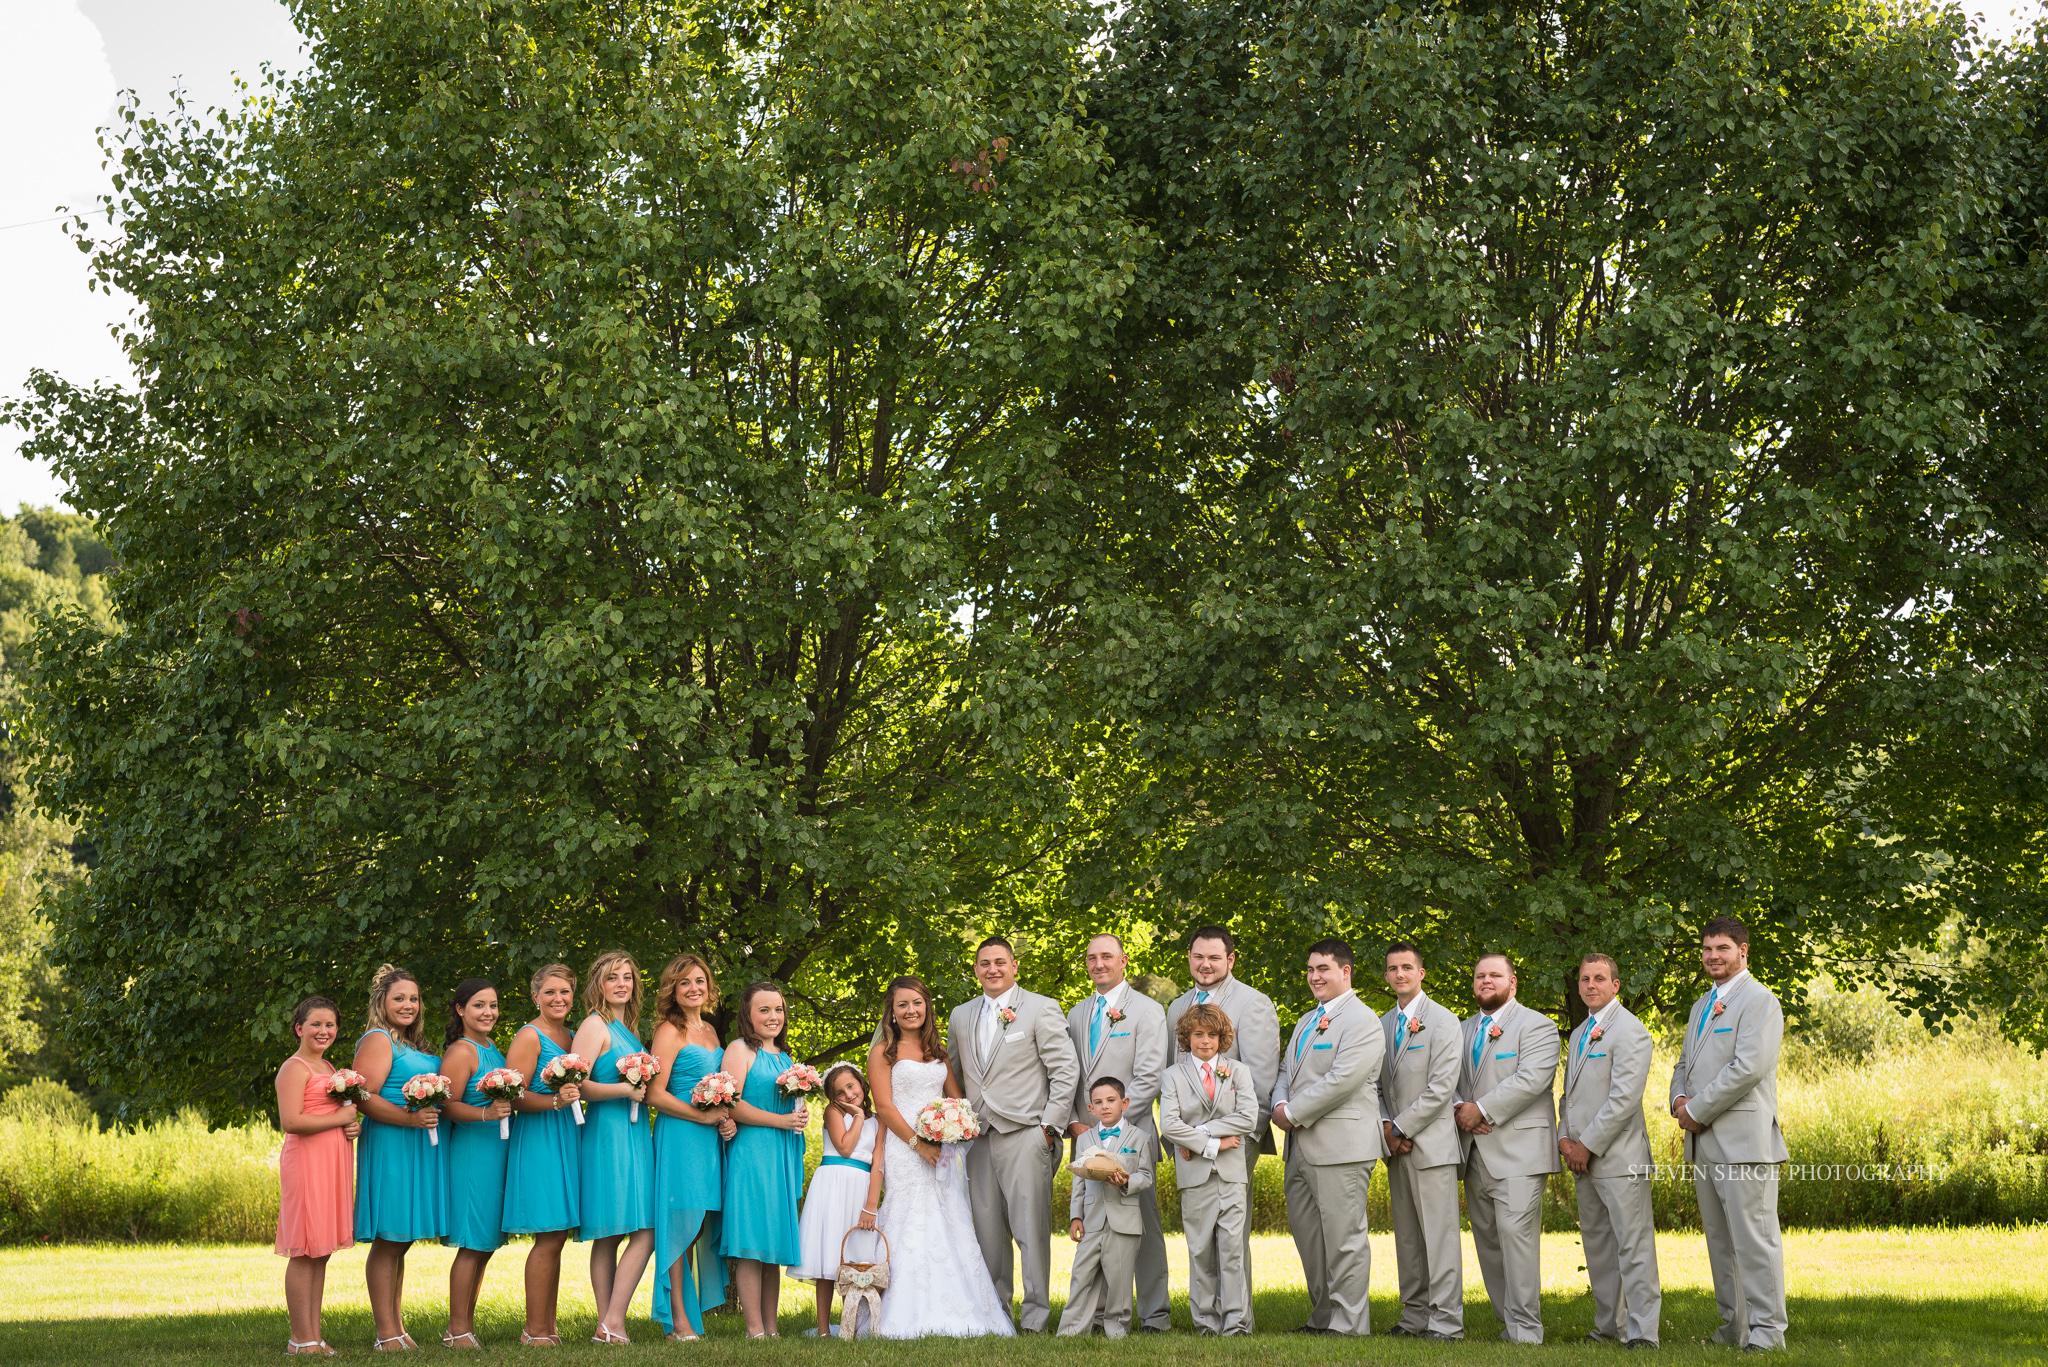 Clarks-Summit-PA-NEPA-Wedding-Photographer-Inn-Abingtons-Party-photography-steven-serge-27.jpg